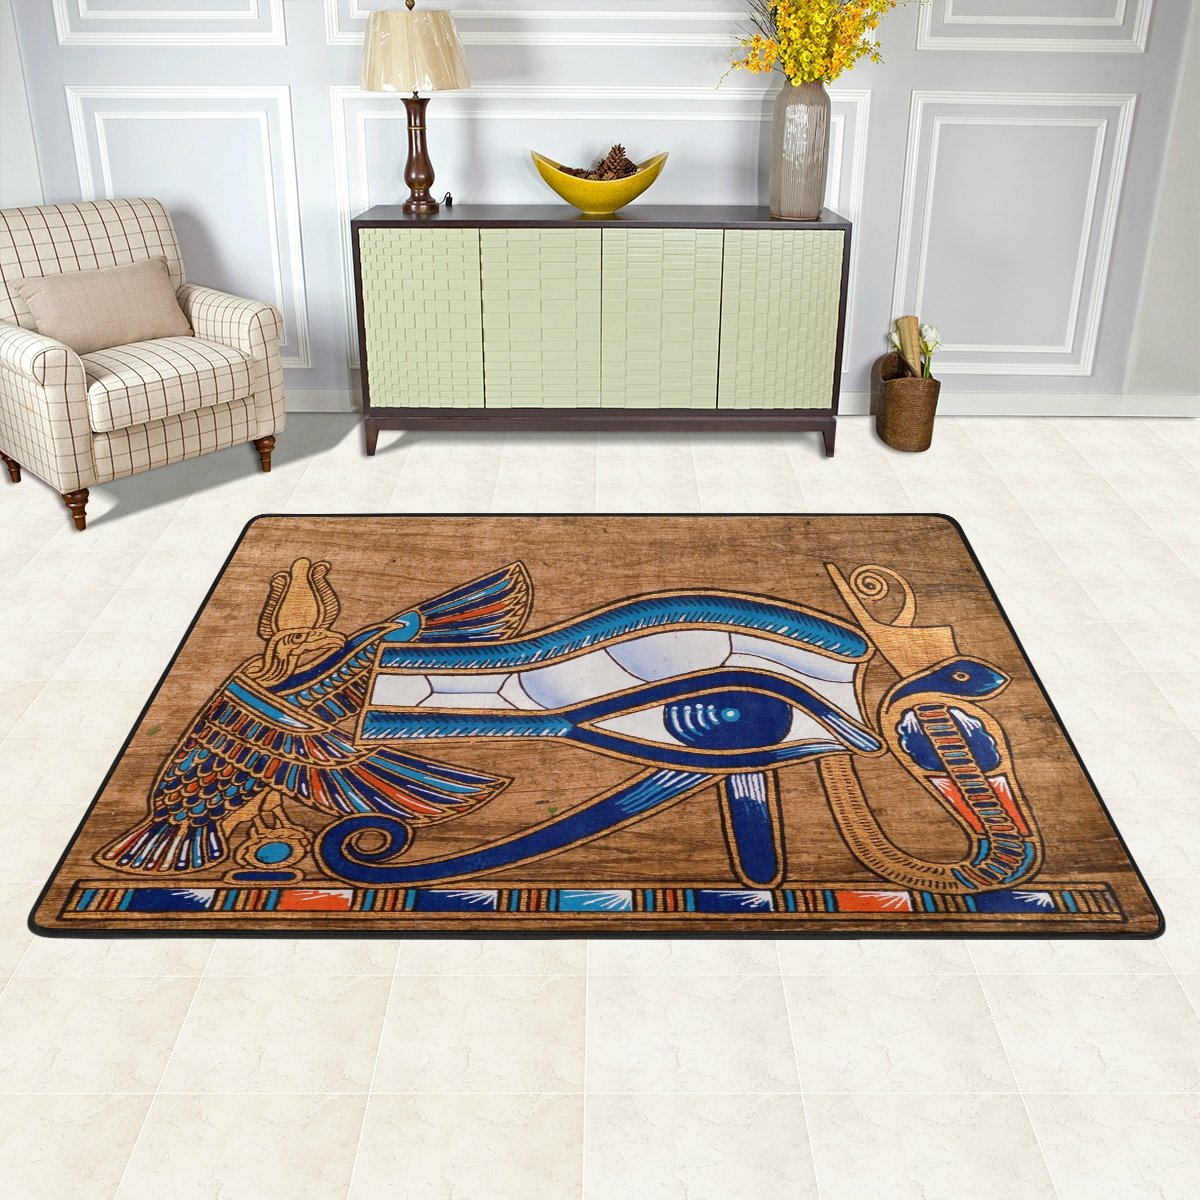 Naanle Egypt Area Rug 4 x6 , Egyptian Horus Eye Polyester Area Rug Mat for Living Dining Dorm Room Bedroom Home Decorative